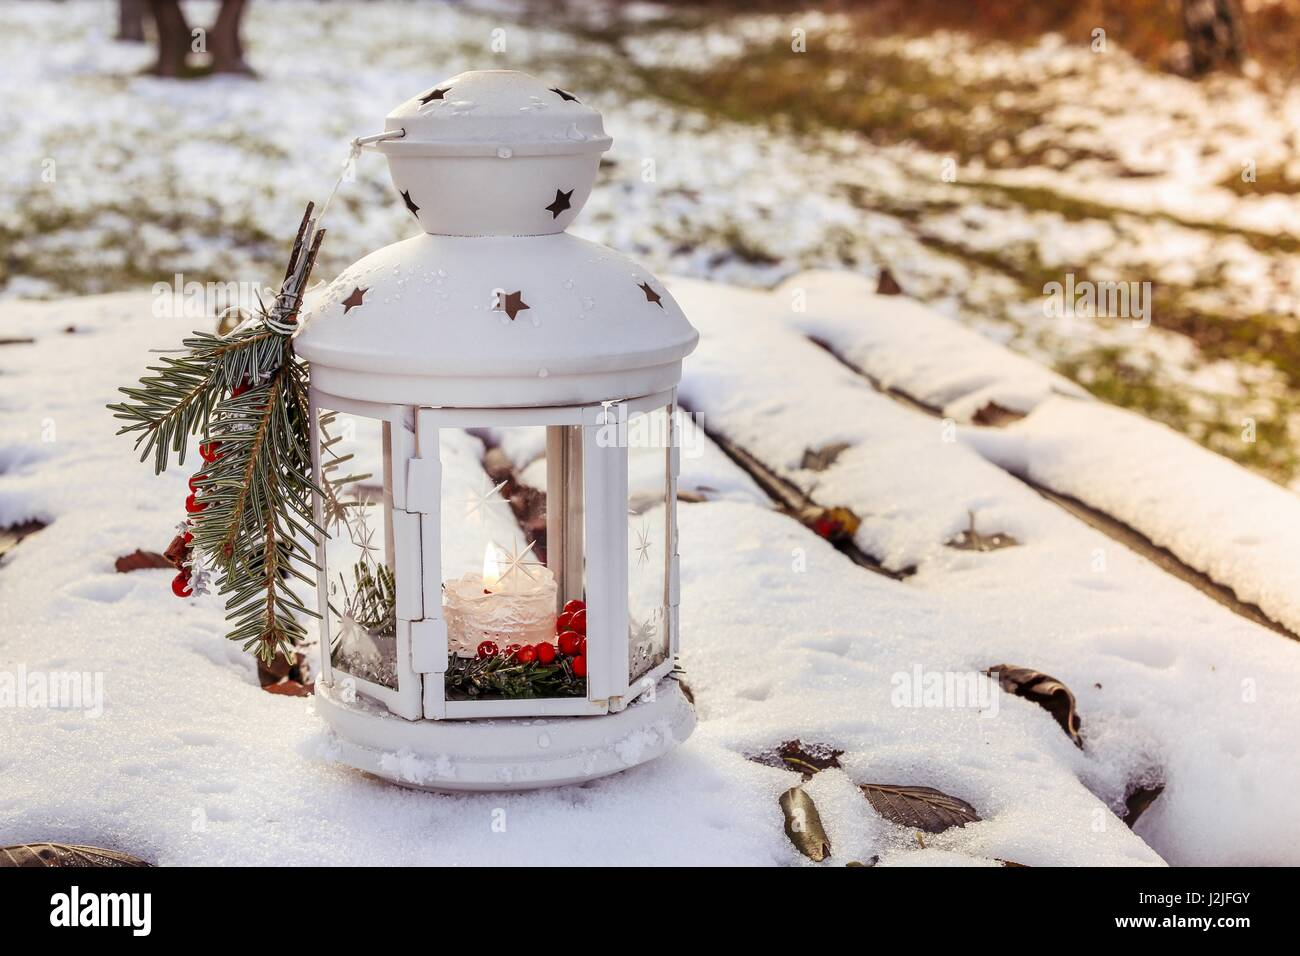 lantern lamp decoration countryside stock photos u0026 lantern lamp